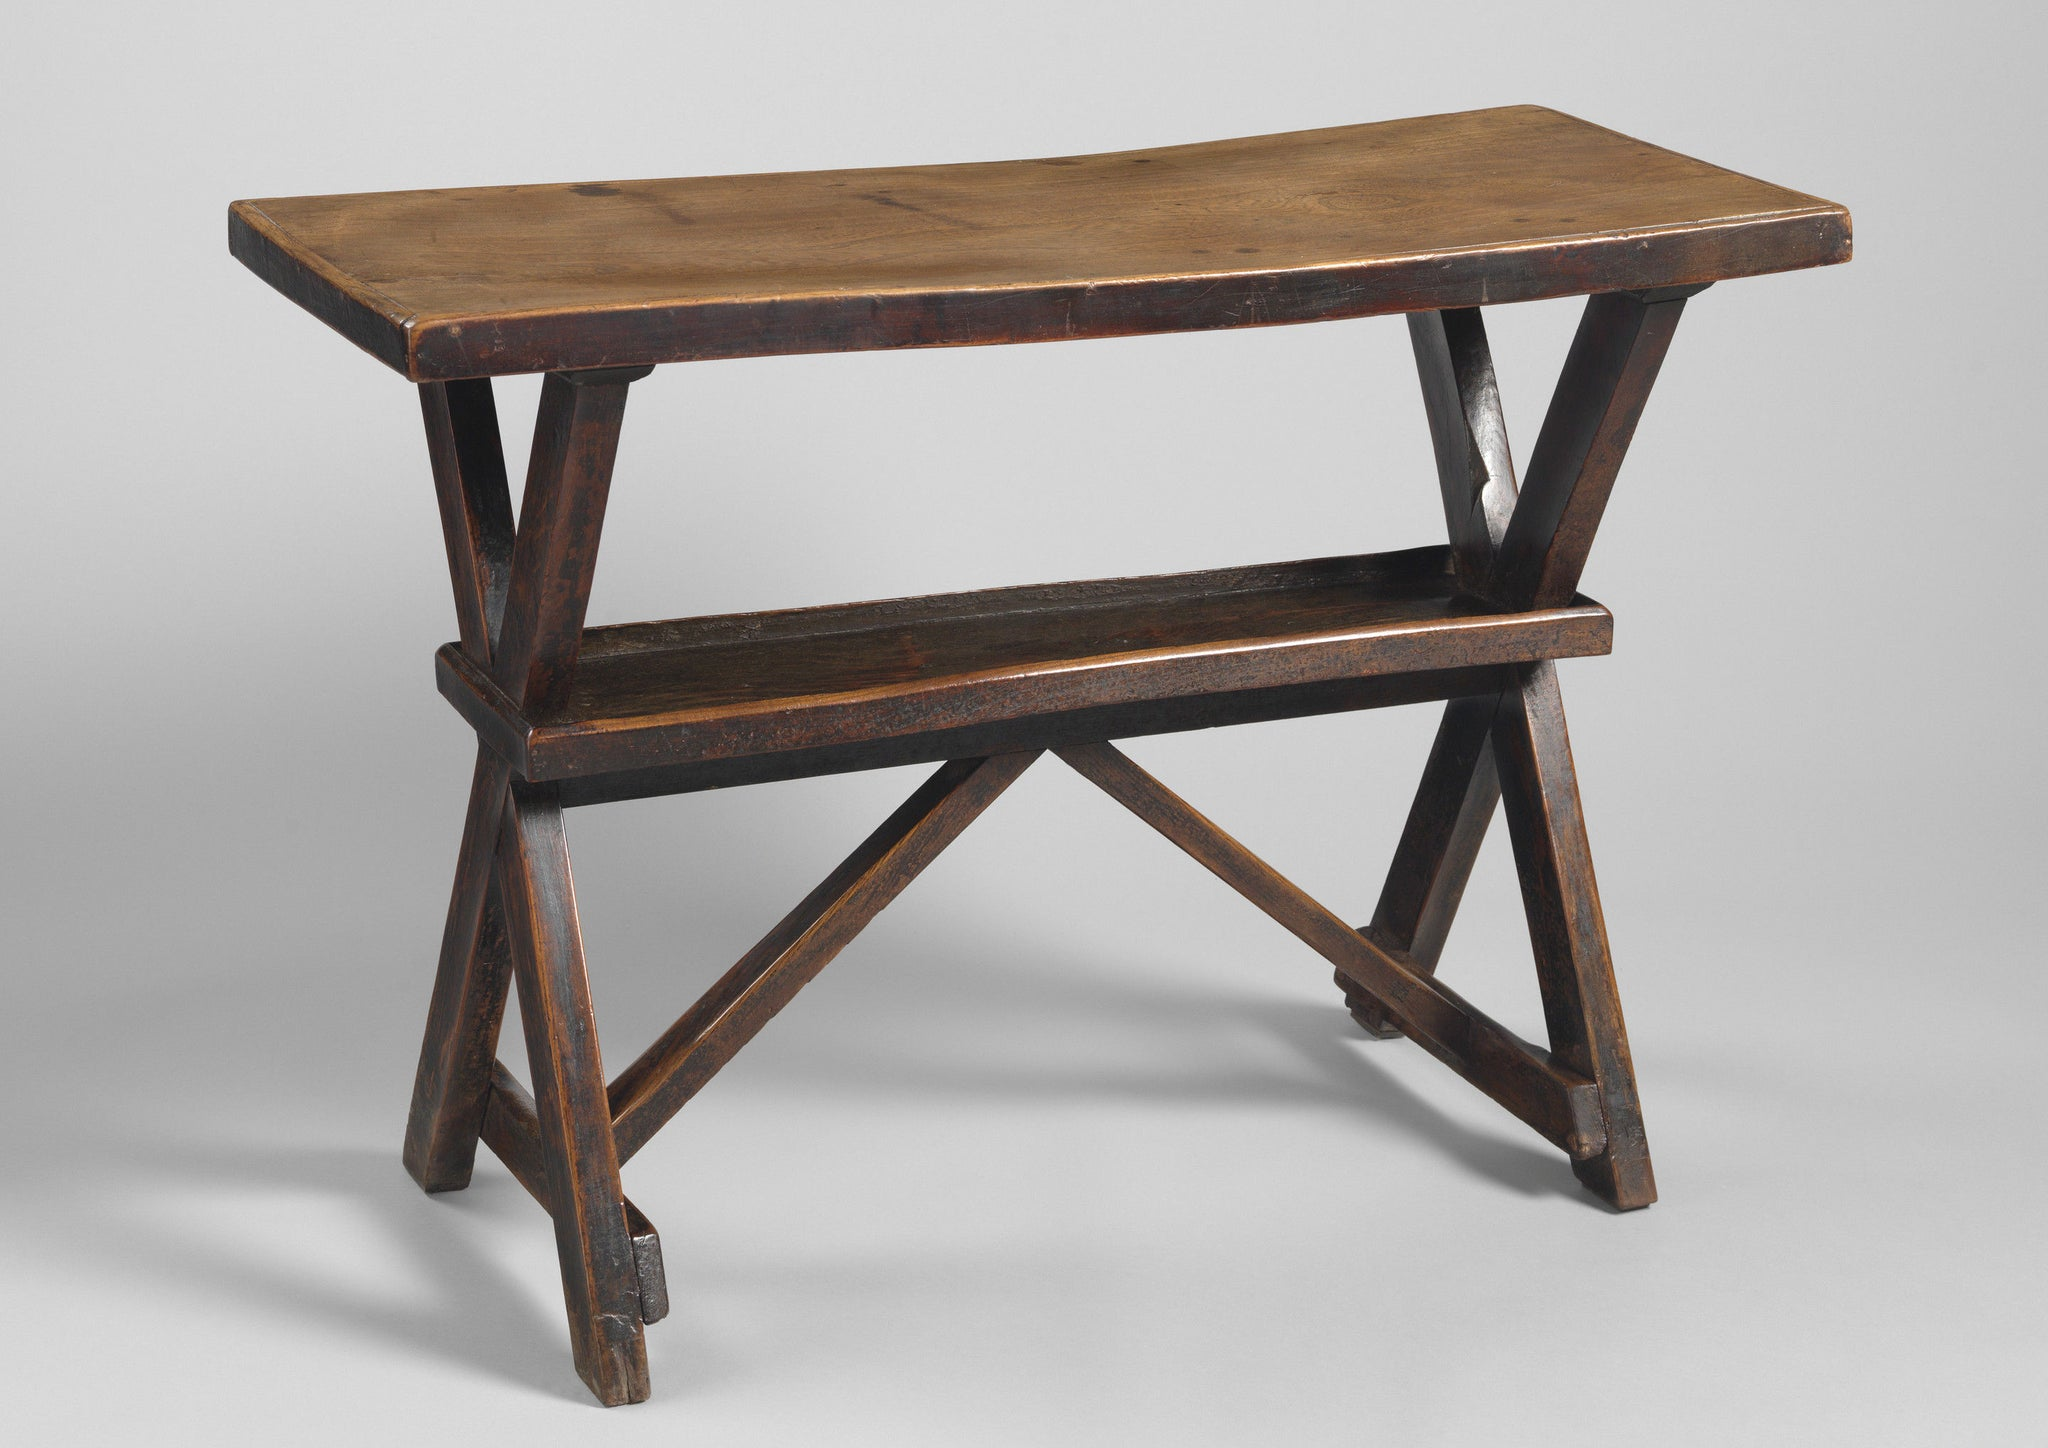 Two Sculptural Early Tavern Tables